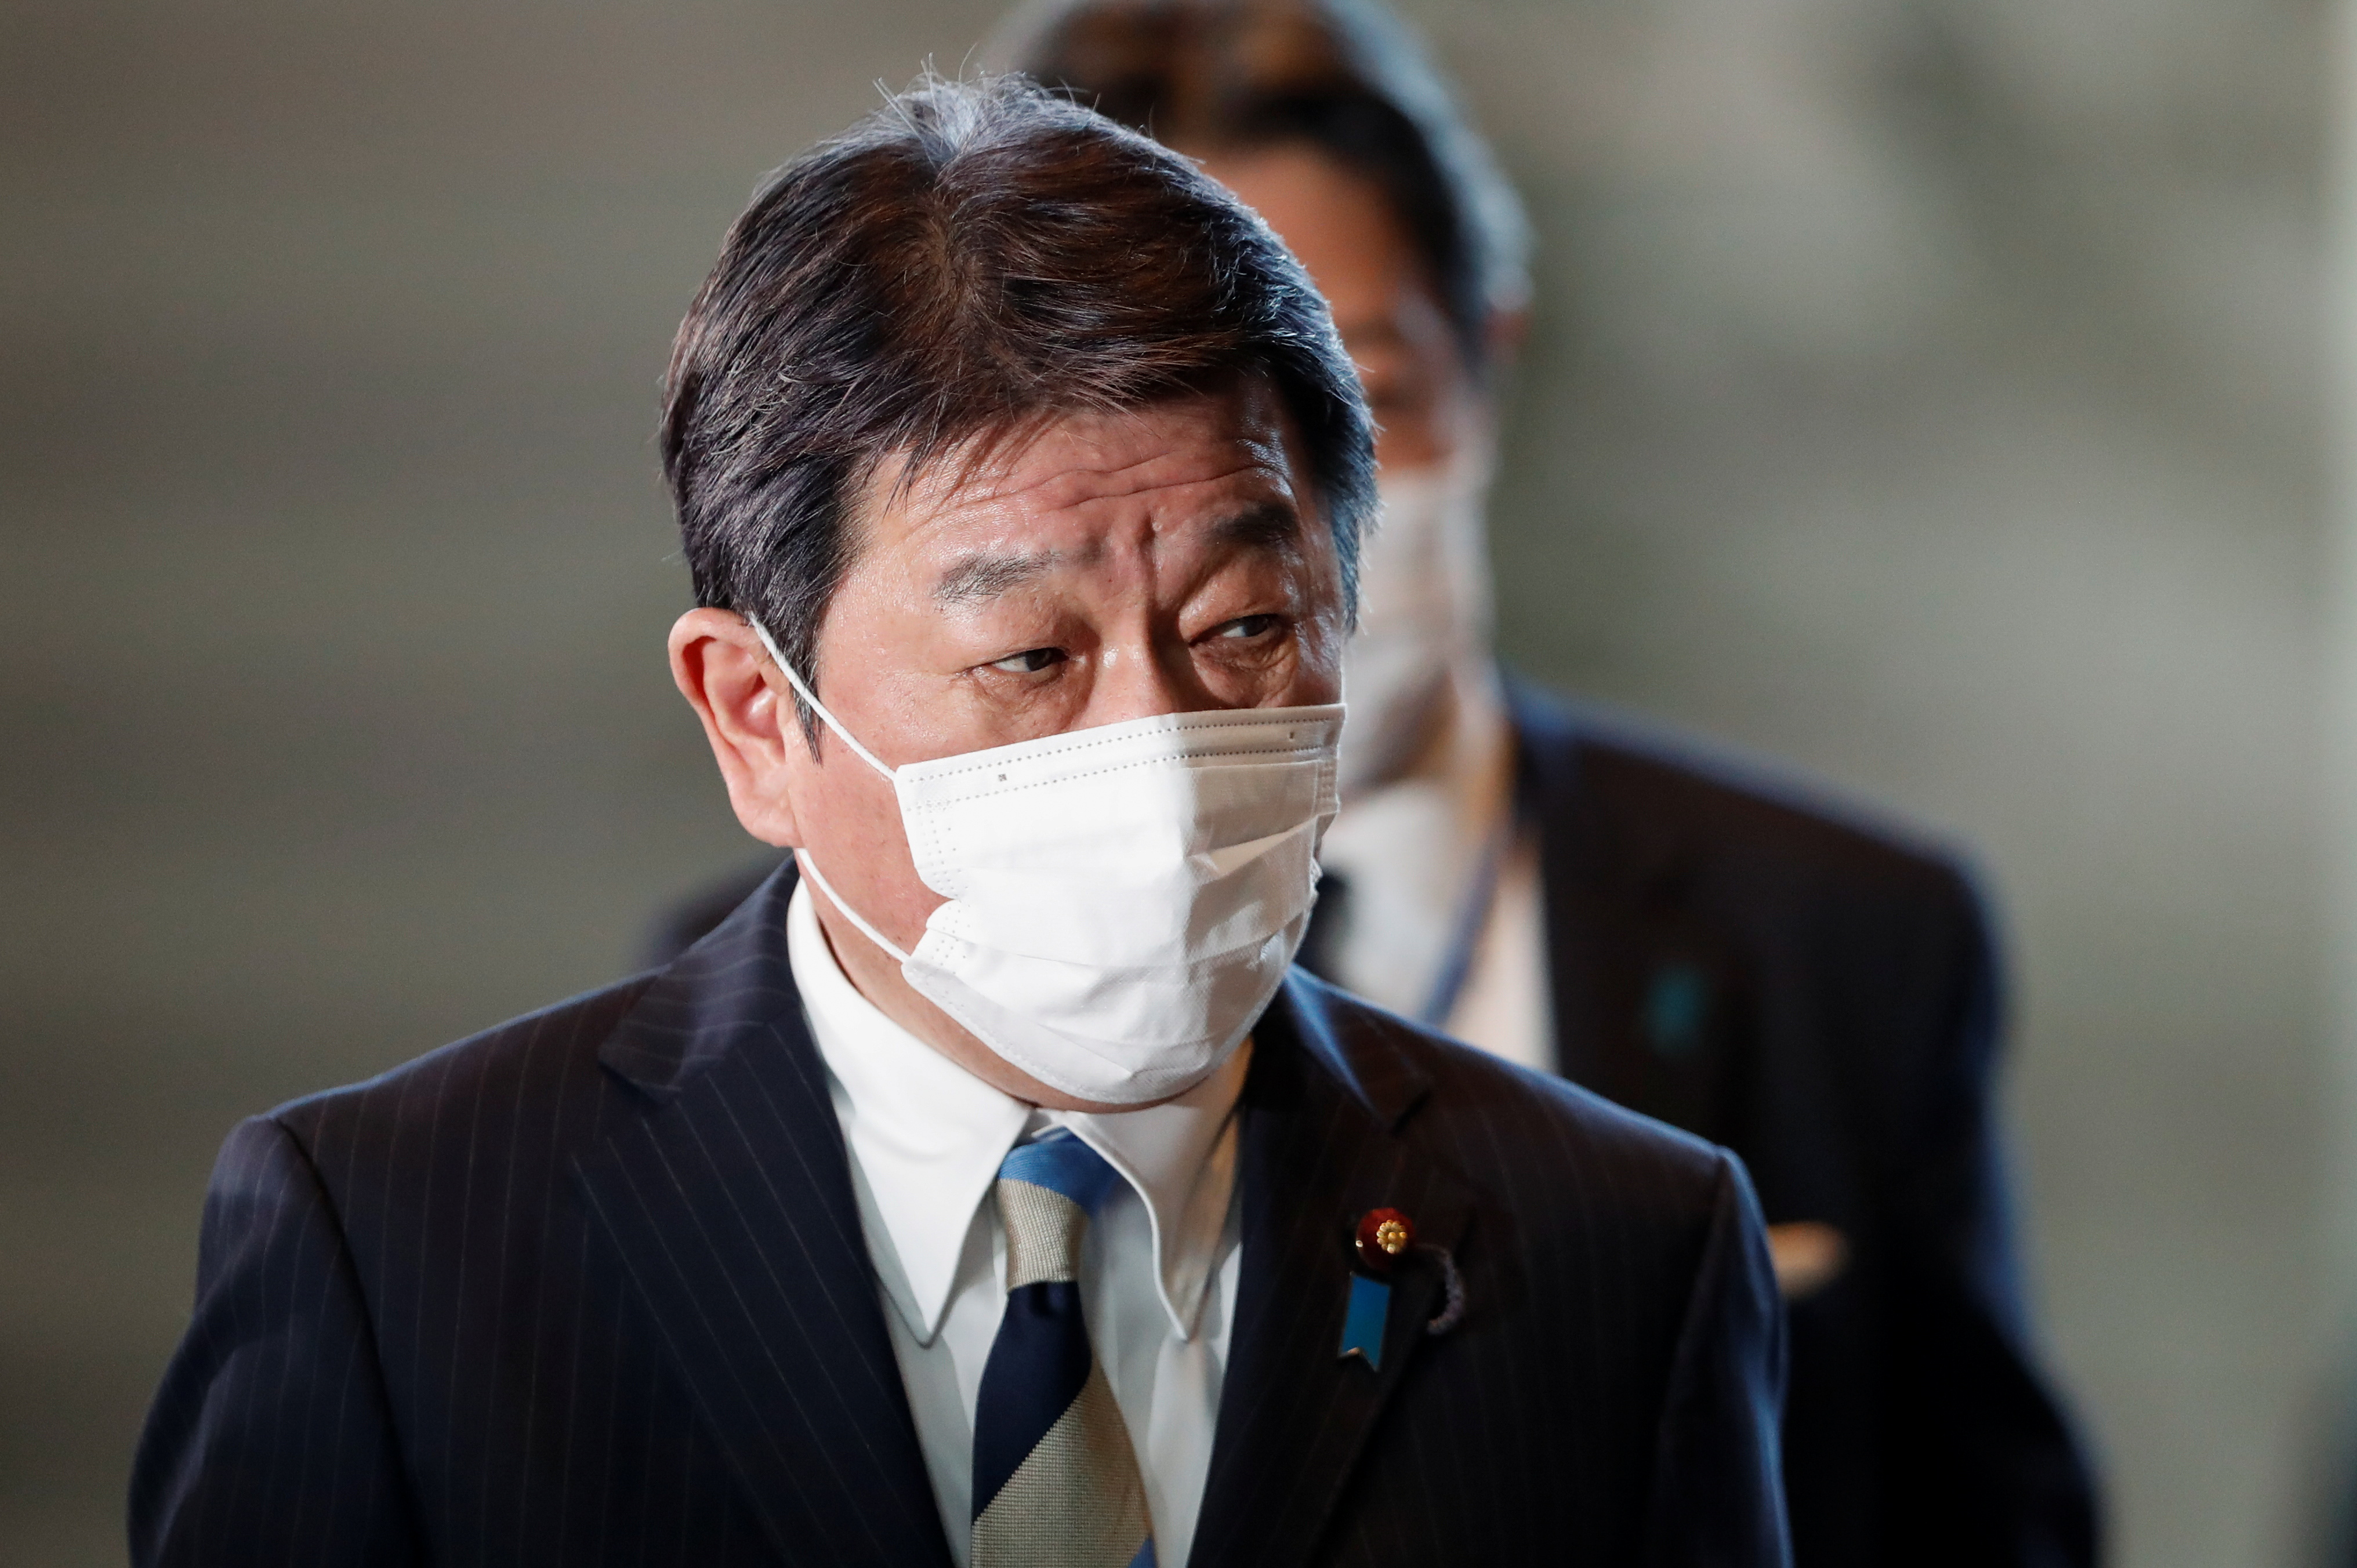 Japan's new Foreign Minister Toshimitsu Motegi arrives at prime minister's office in Tokyo, Japan October 4, 2021.  REUTERS/Issei Kato